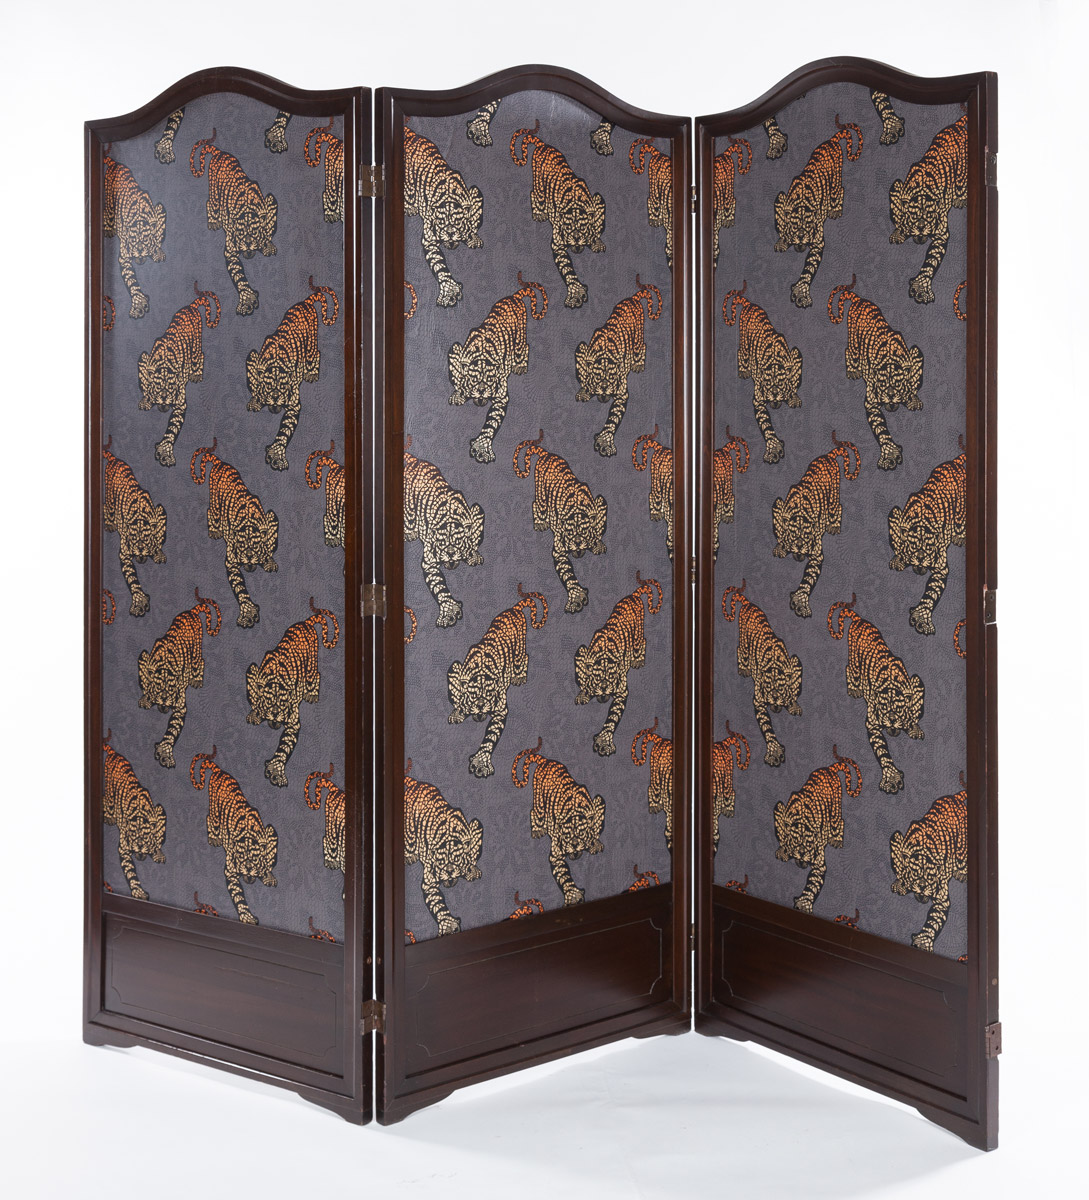 3 Panel Screen with Tigers